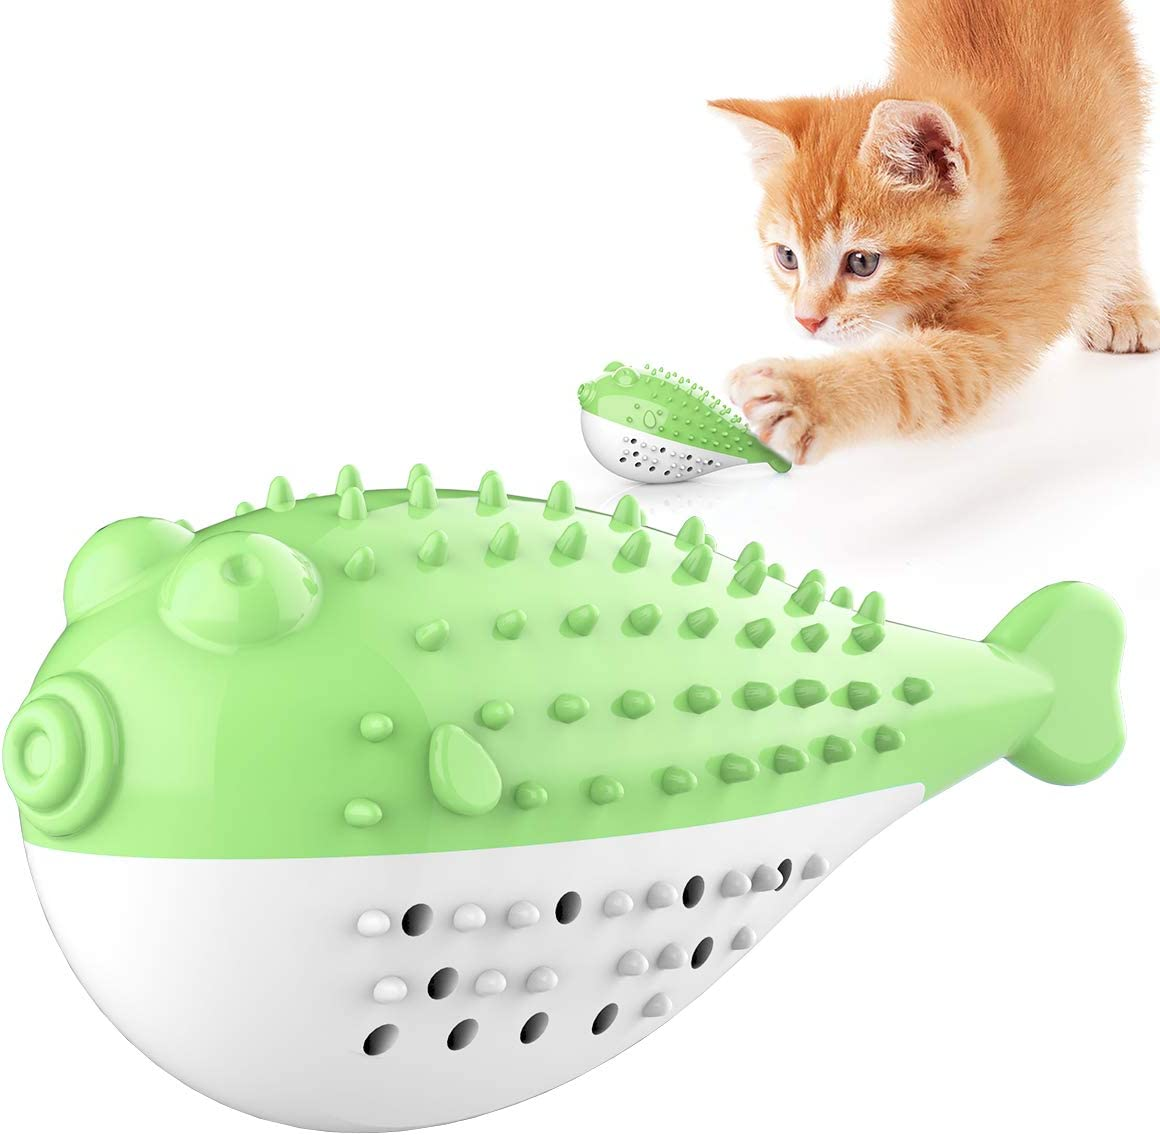 BeiNing Cat It Sacramento Mall is very popular Toothbrush Catnip Toy Bell Built-in with Interactiv